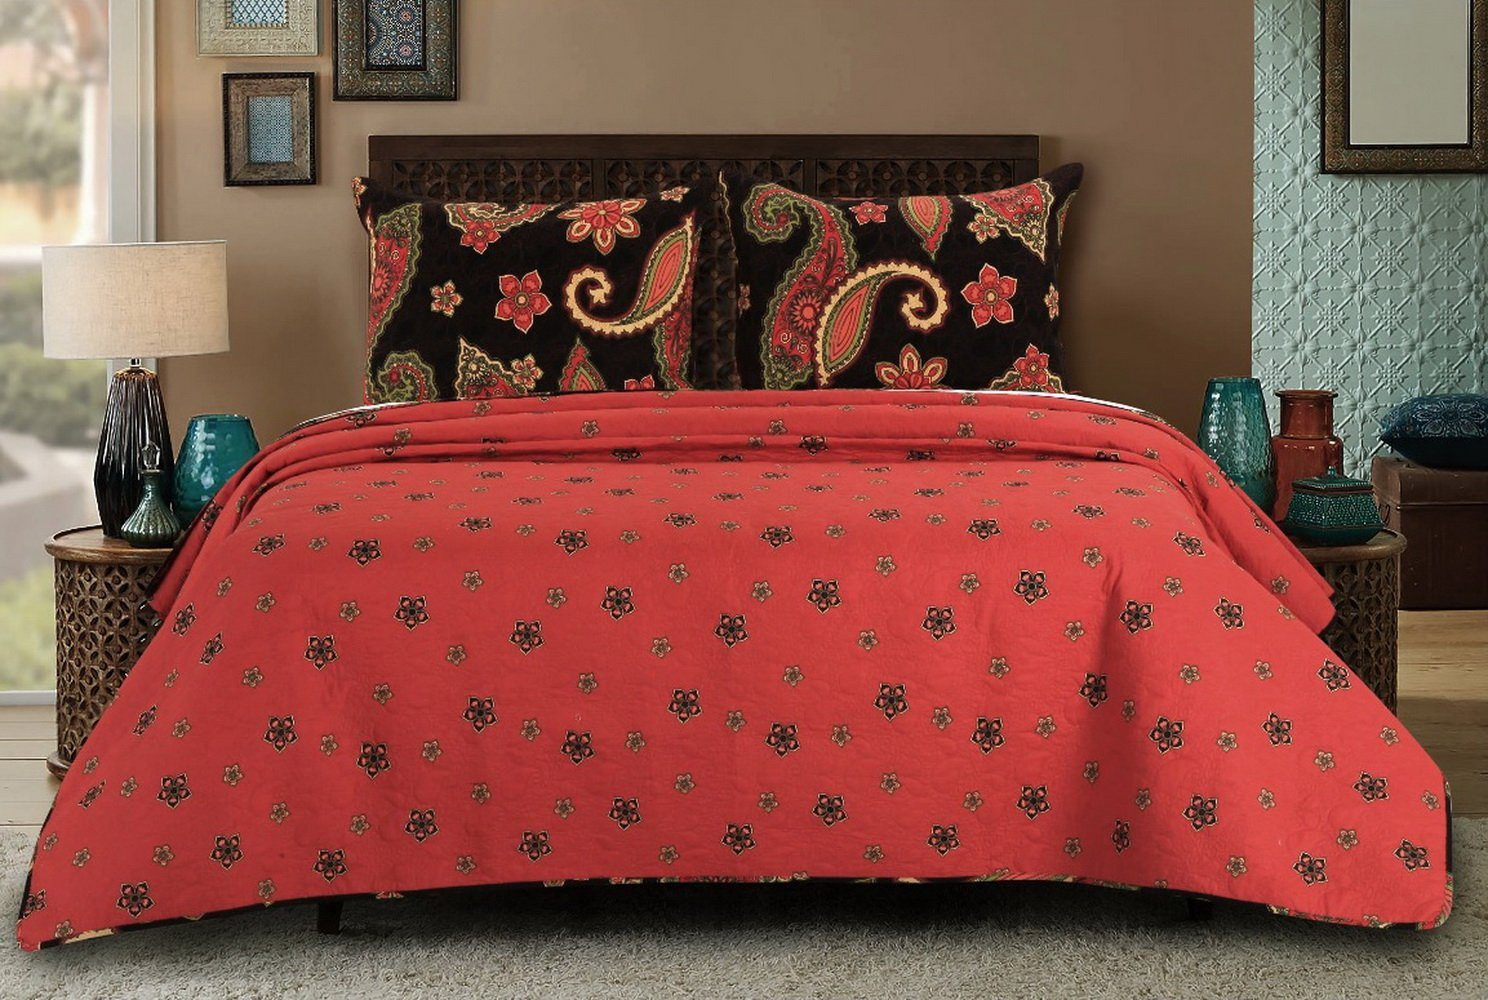 Vintage Retro Paisley Medallion Pattern Print Bedding Orange Yellow Charcoal Luxury Reversible 3 Piece Cotton Quilt Set with Shams King Size Size - Includes Bed Sheet Straps by Finely Stitched (Image #3)